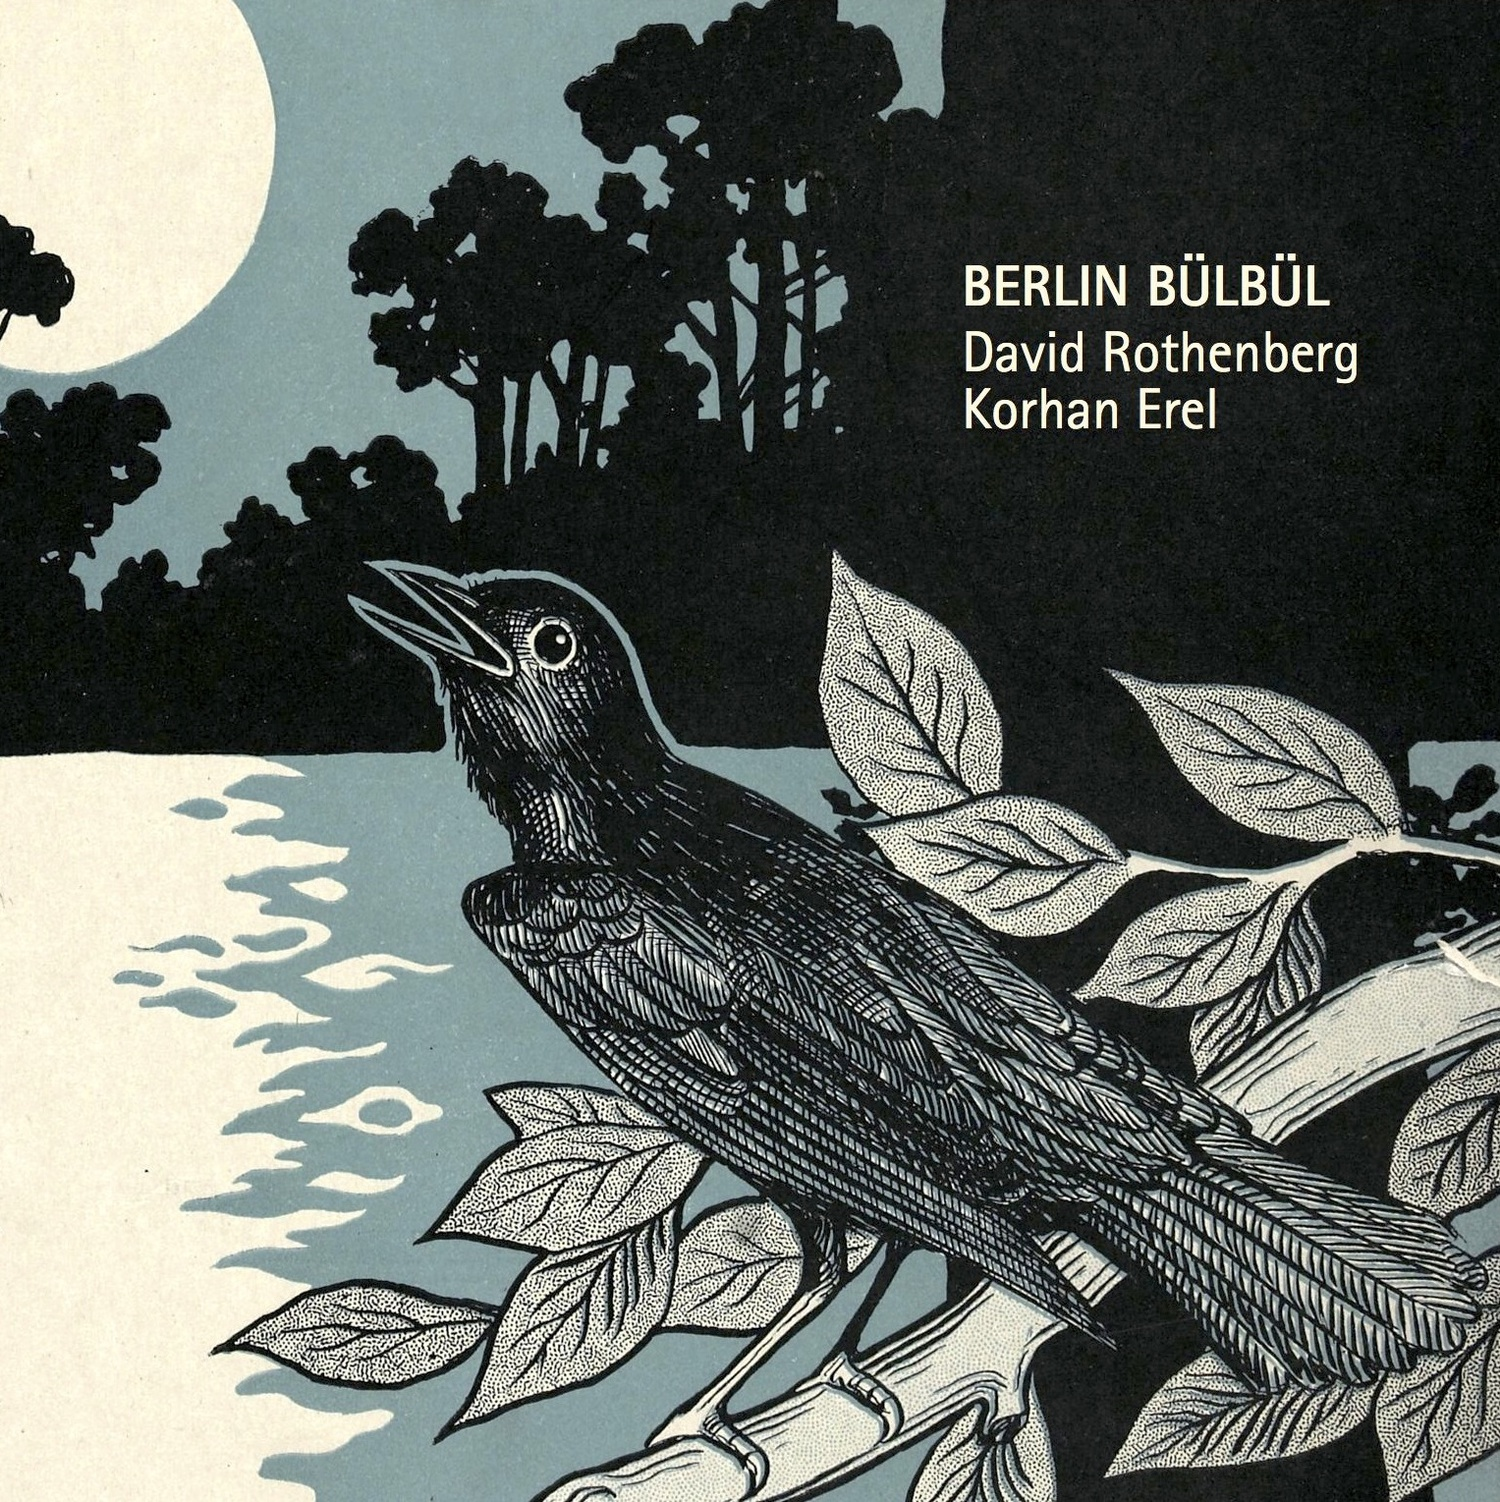 Berlin Bülbül - David Rothenberg and Korhan Erel's midnight jam with Berlin's fabulous singing nachtigals. About half the tunes on the album are live human/nightingale encounters, and the rest are constructions mixing clarinets and electronic mysteries.